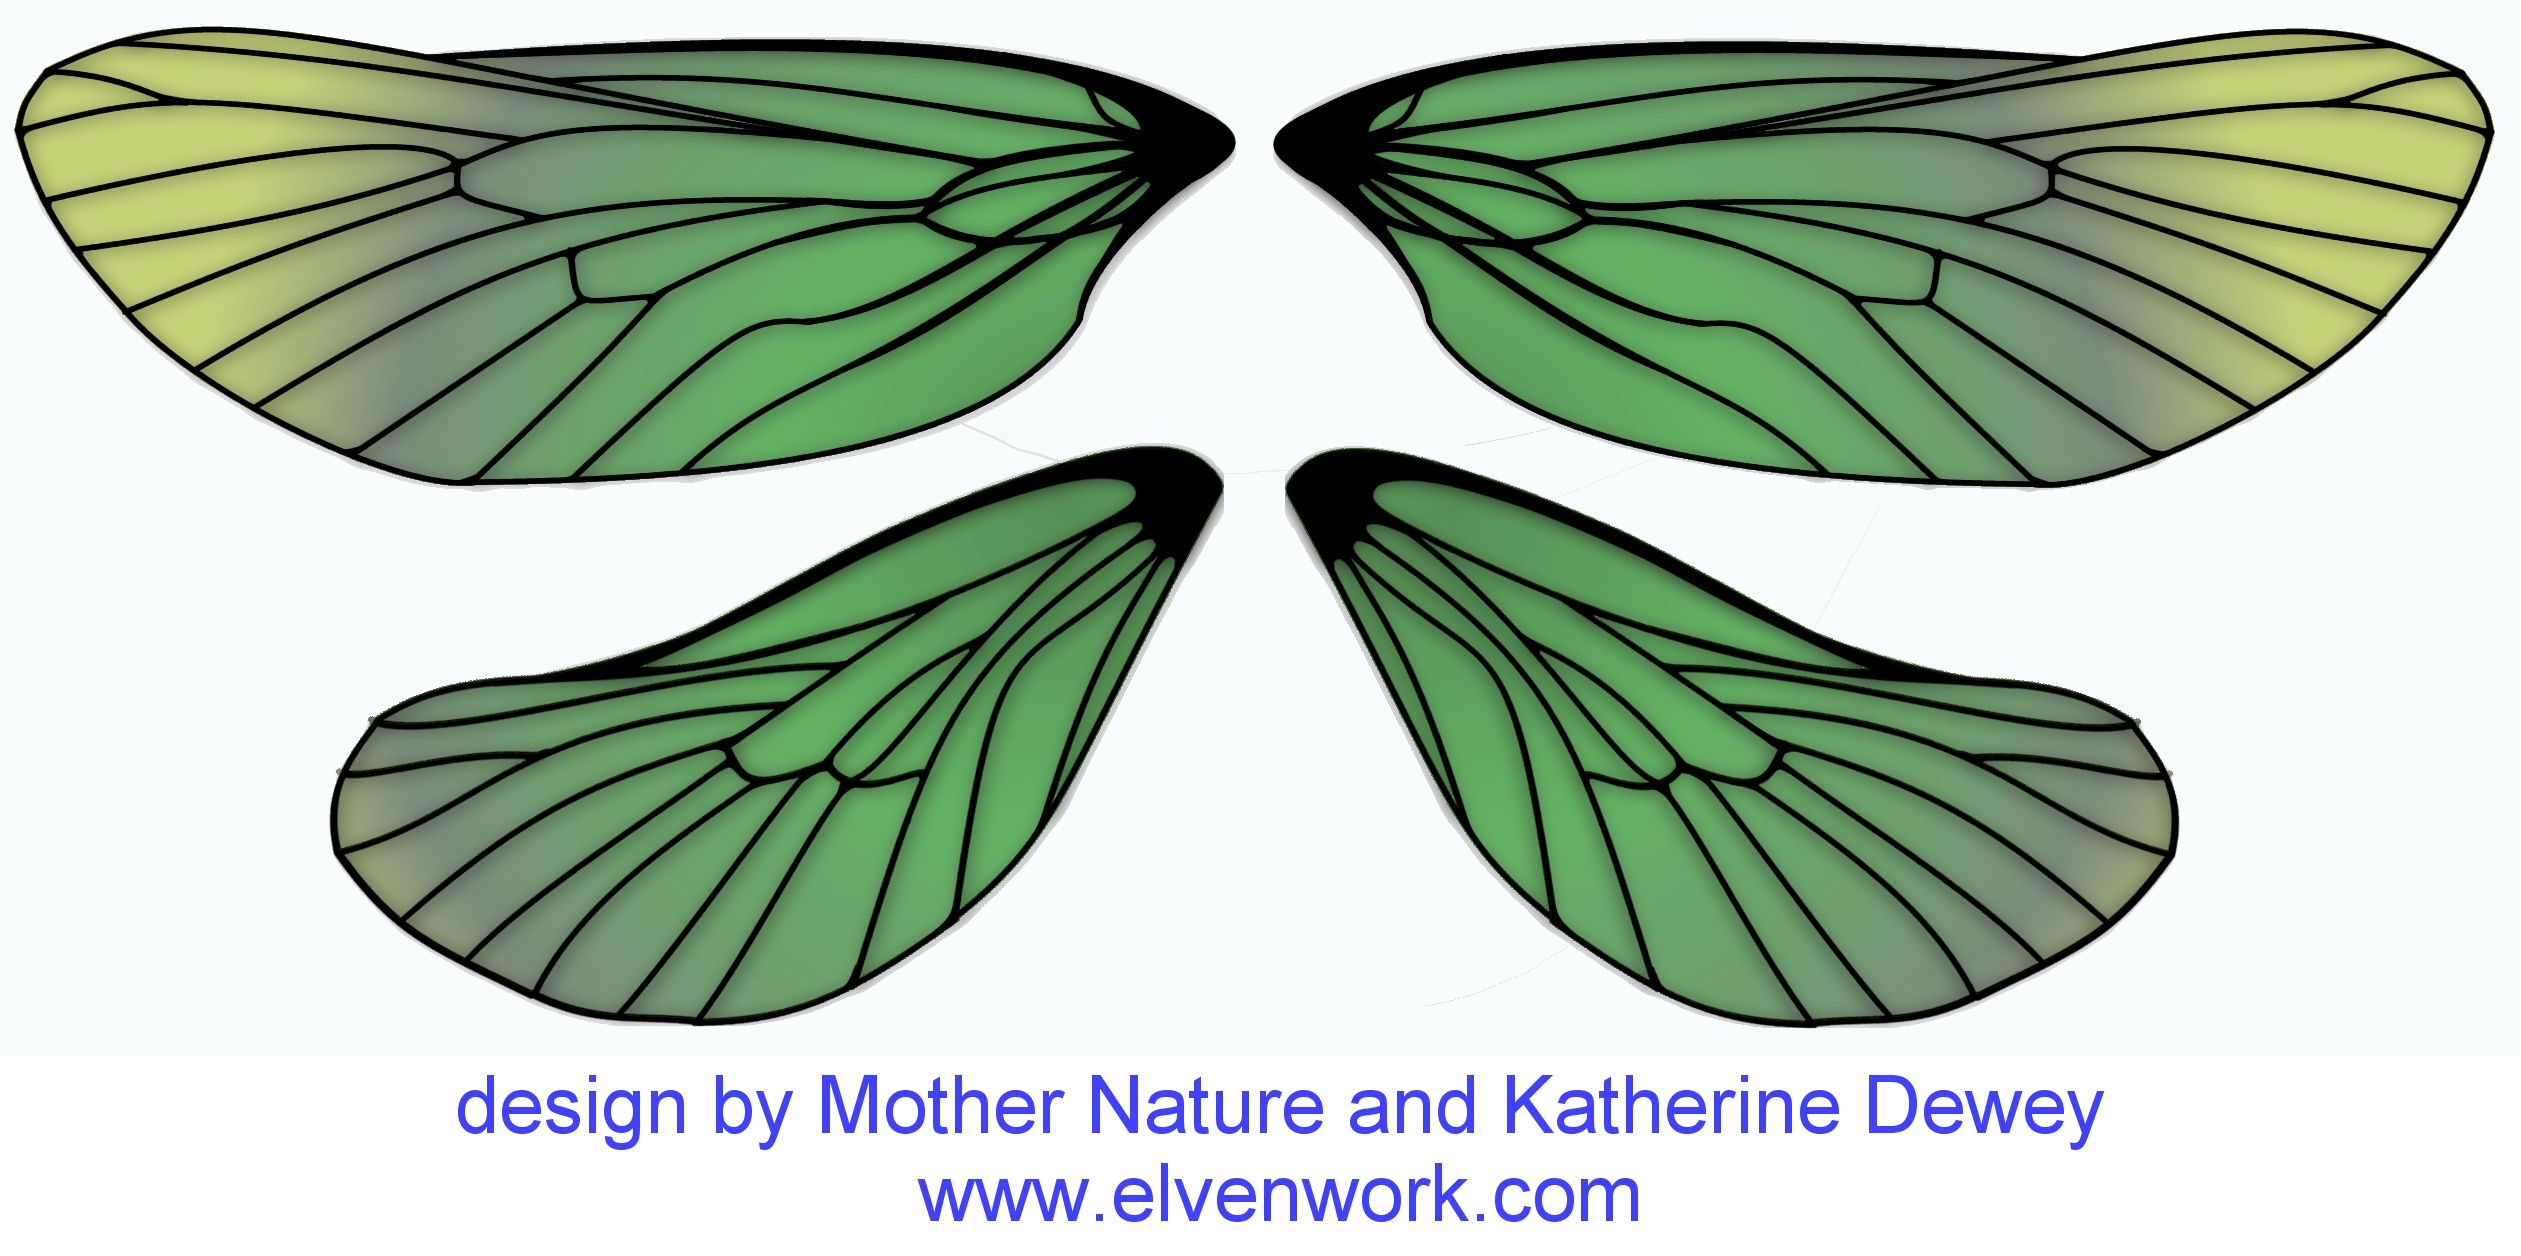 fairy wing designs by katherine dewey wonderful site with several